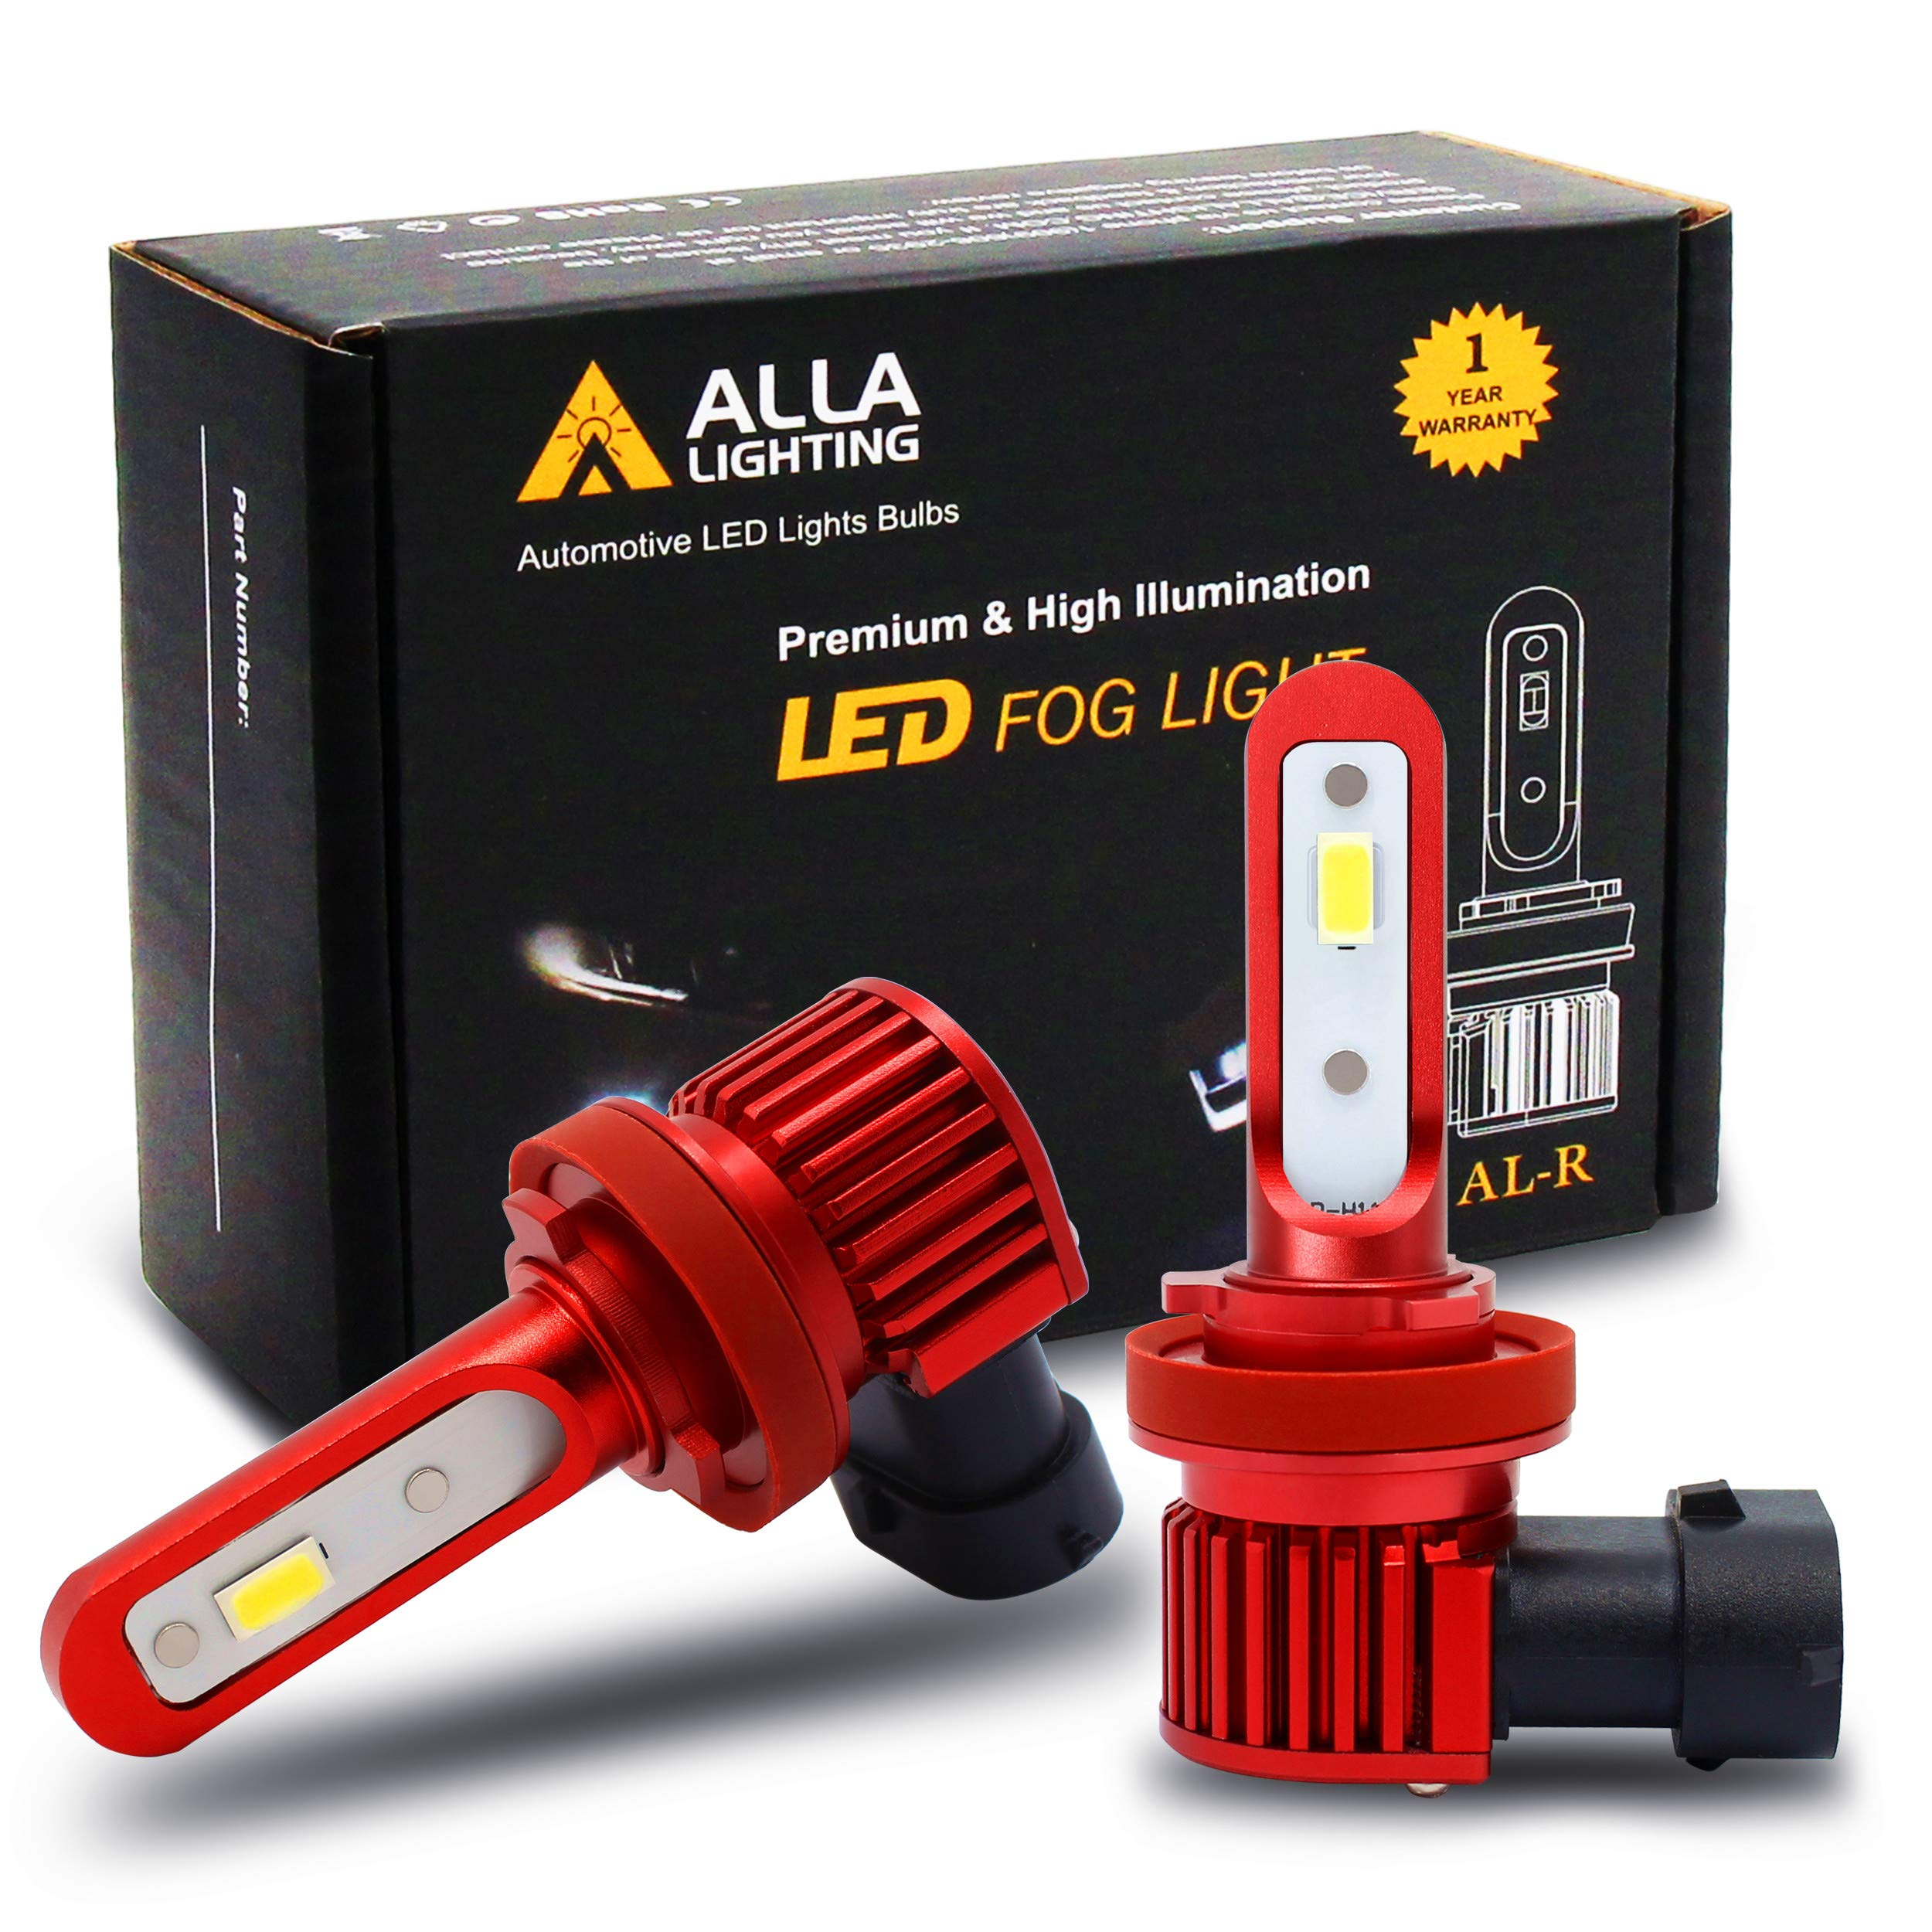 Alla Lighting 5200lm AL-R H11 H16 LED Fog Lights Bulbs Xtremely Super Bright H8 H11 H16 LED Bulb High Power 12V LED H16 Bulb Replacement for Cars, Trucks w/ H8 H11 H16 Fog Light, 6000K Xenon White by Alla Lighting